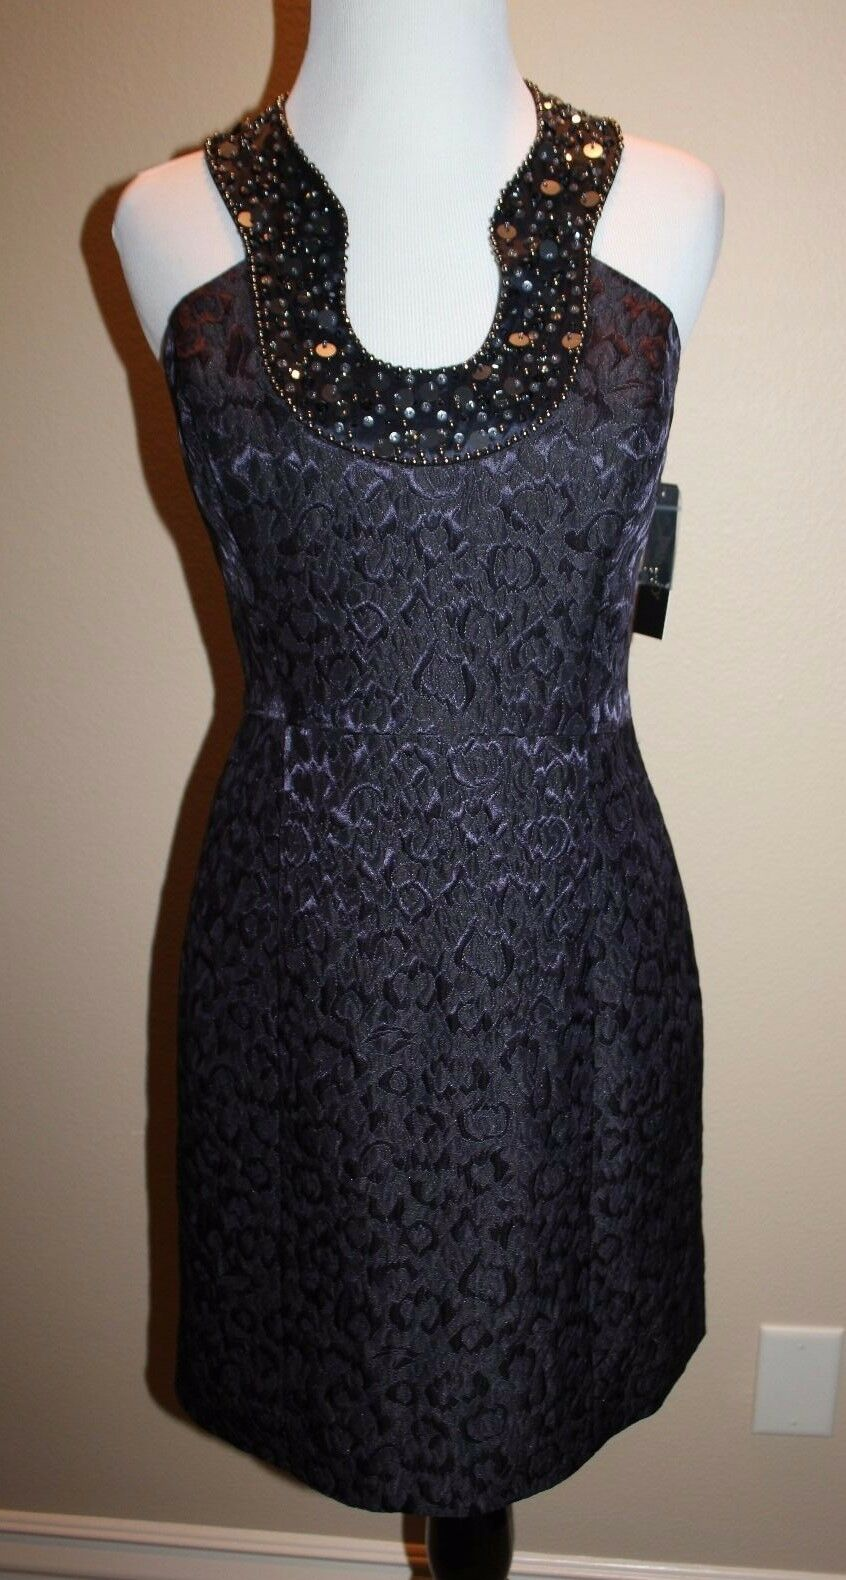 Laundry by shelli segal halter style navy bluee key hole beaded dress 4 New w tag